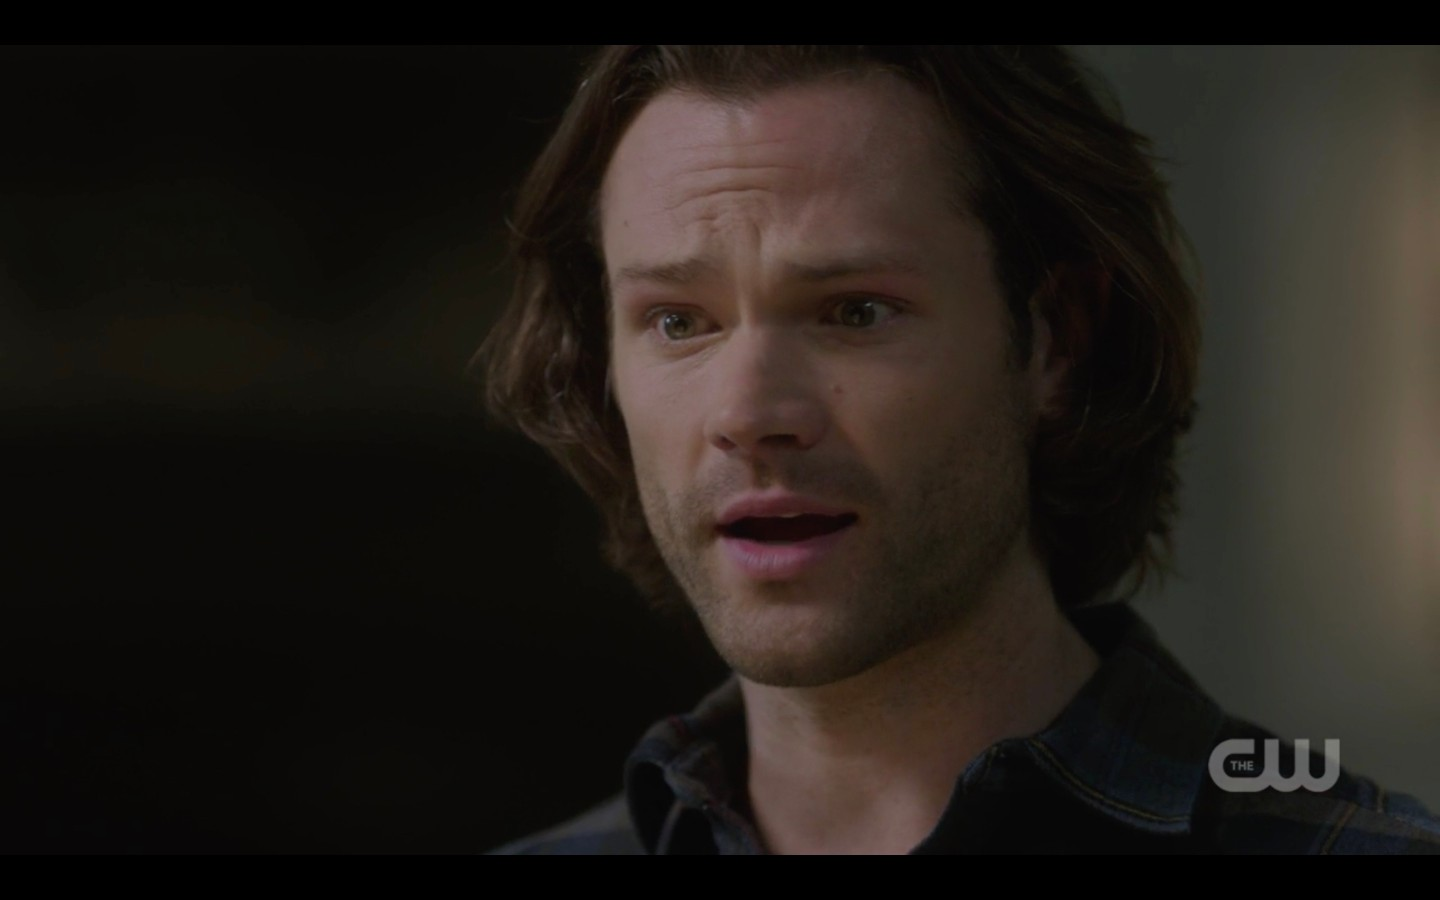 sam winchester were saving mary and jack supernatural 1320